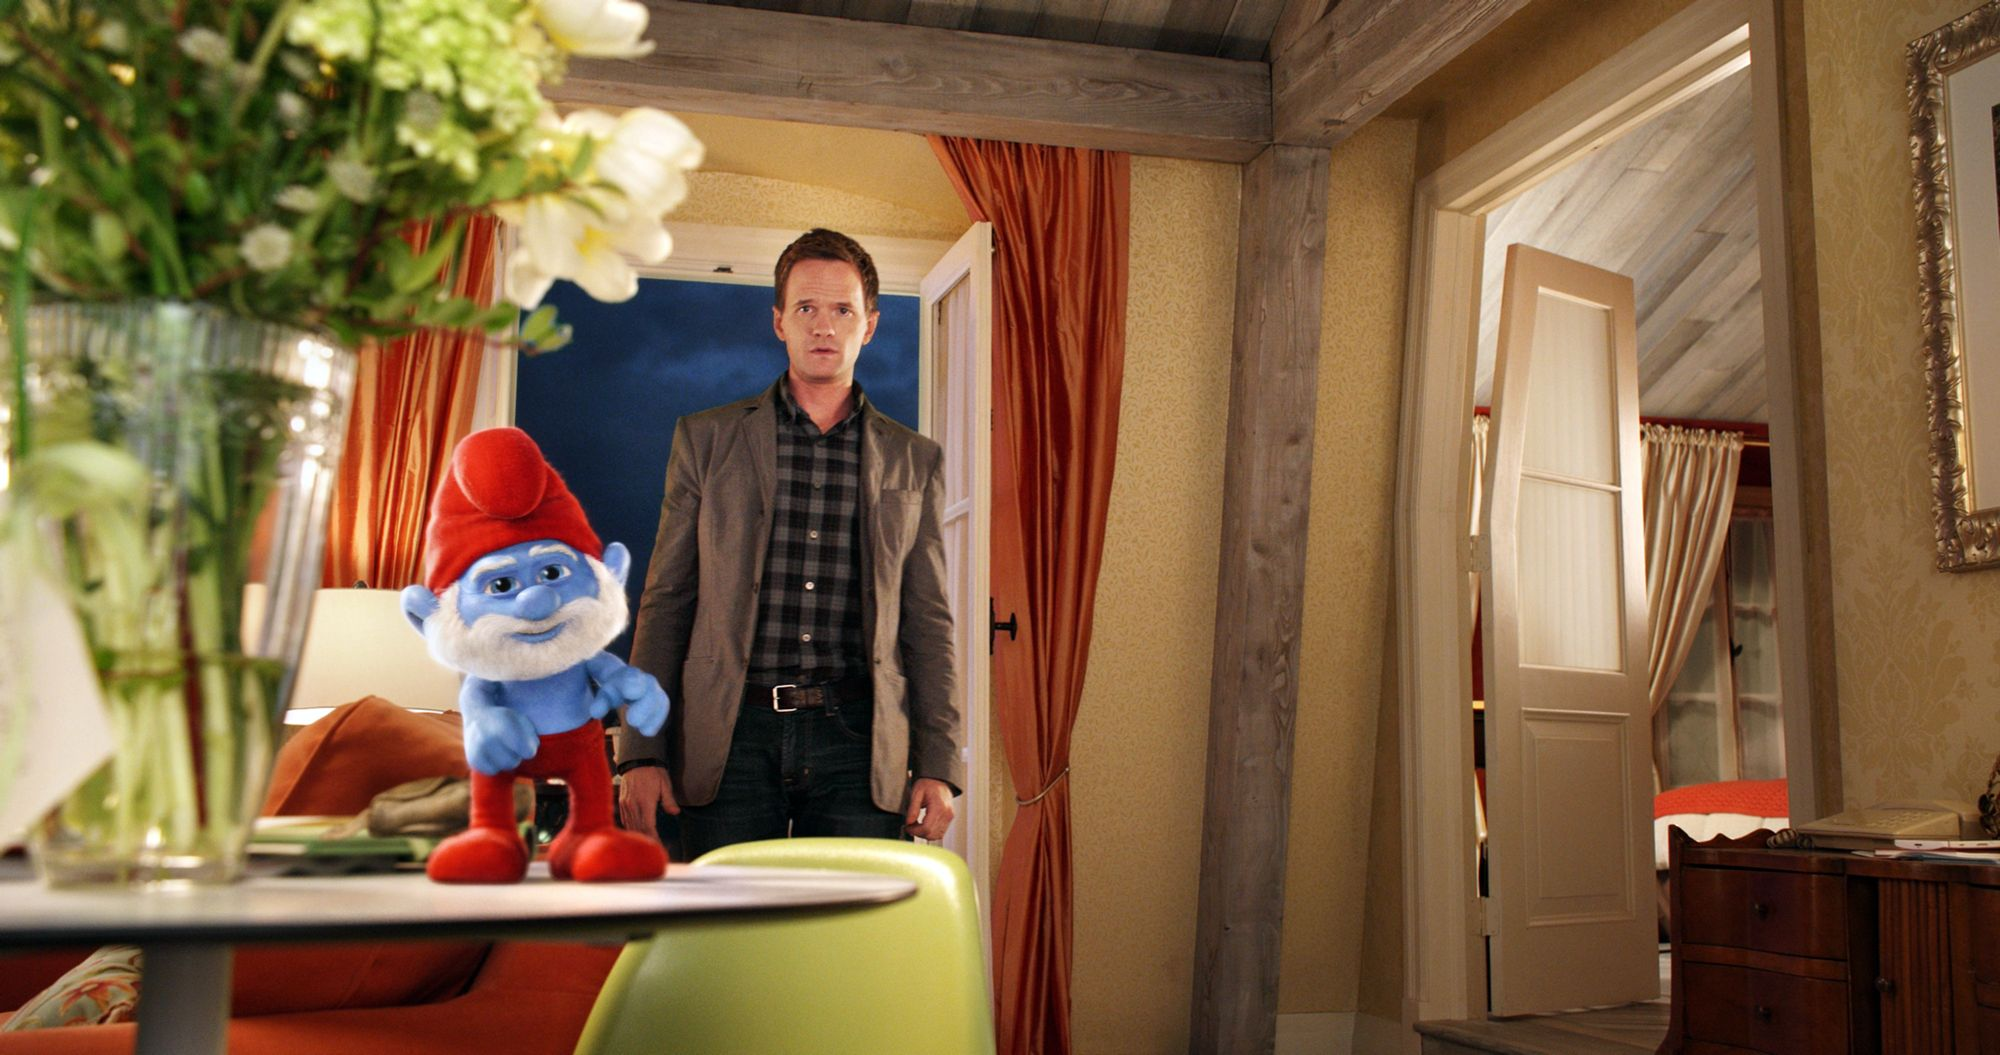 The Smurfs 2 New Images